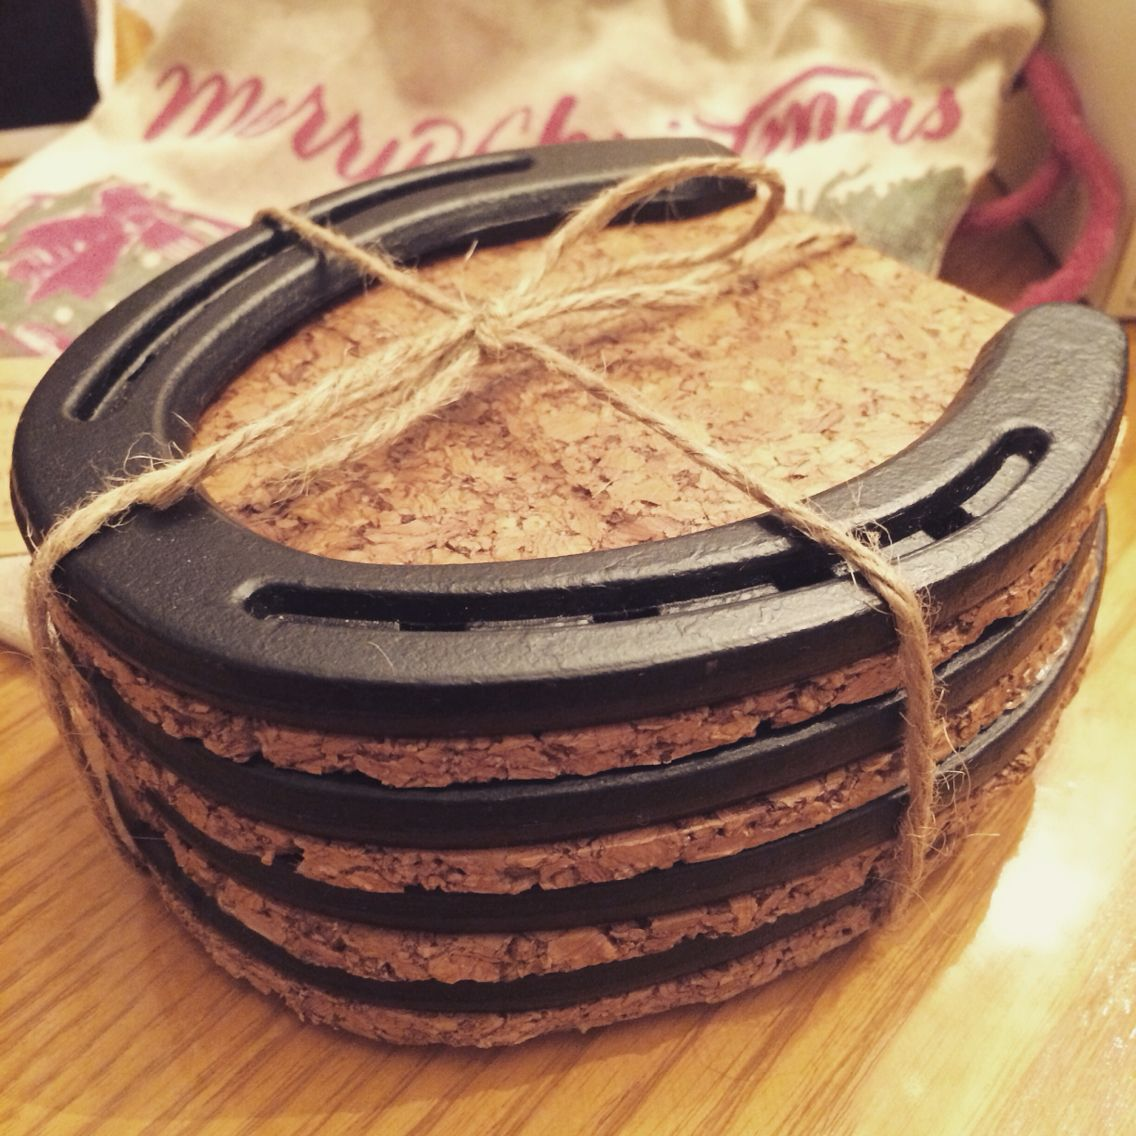 diy horseshoe coasters what you need cork board horseshoes flat diy horseshoe coasters what you need cork board horseshoes flat black spray paint mod podge